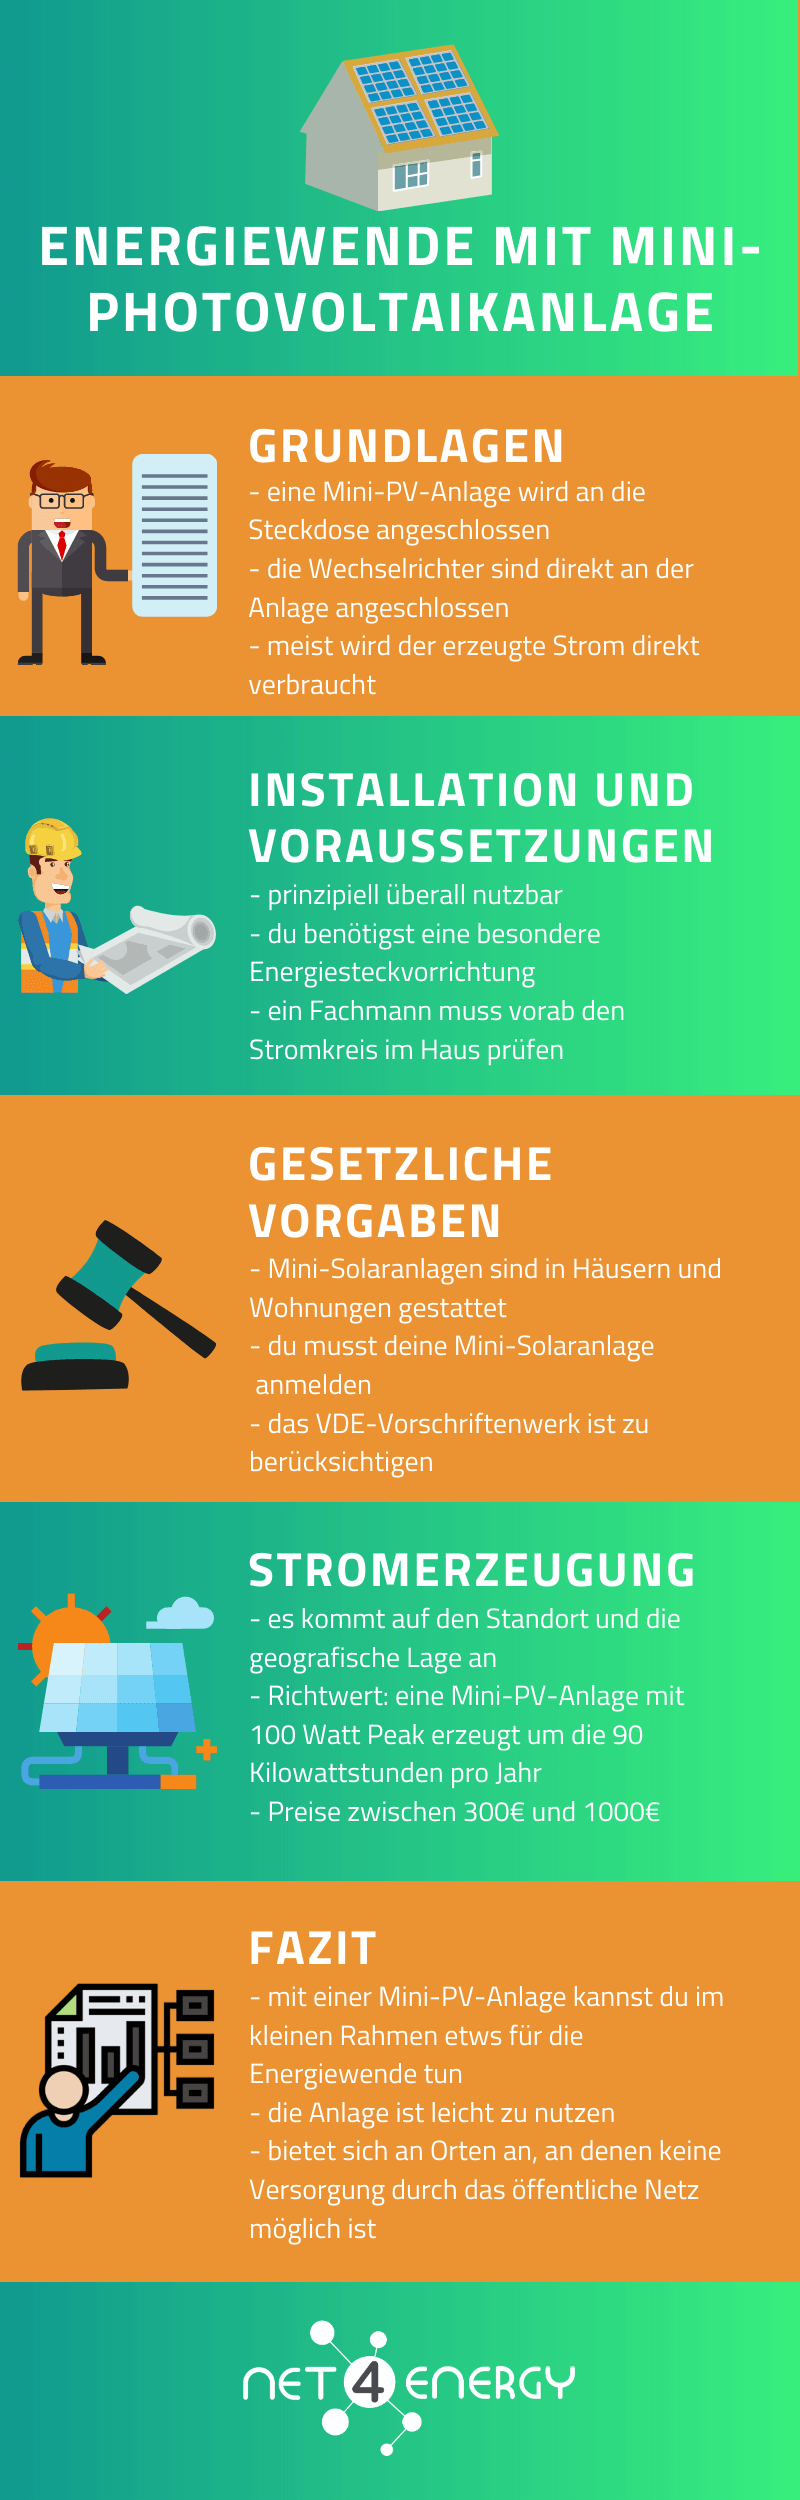 mini-photovoltaikanlage-infografik-net4energy